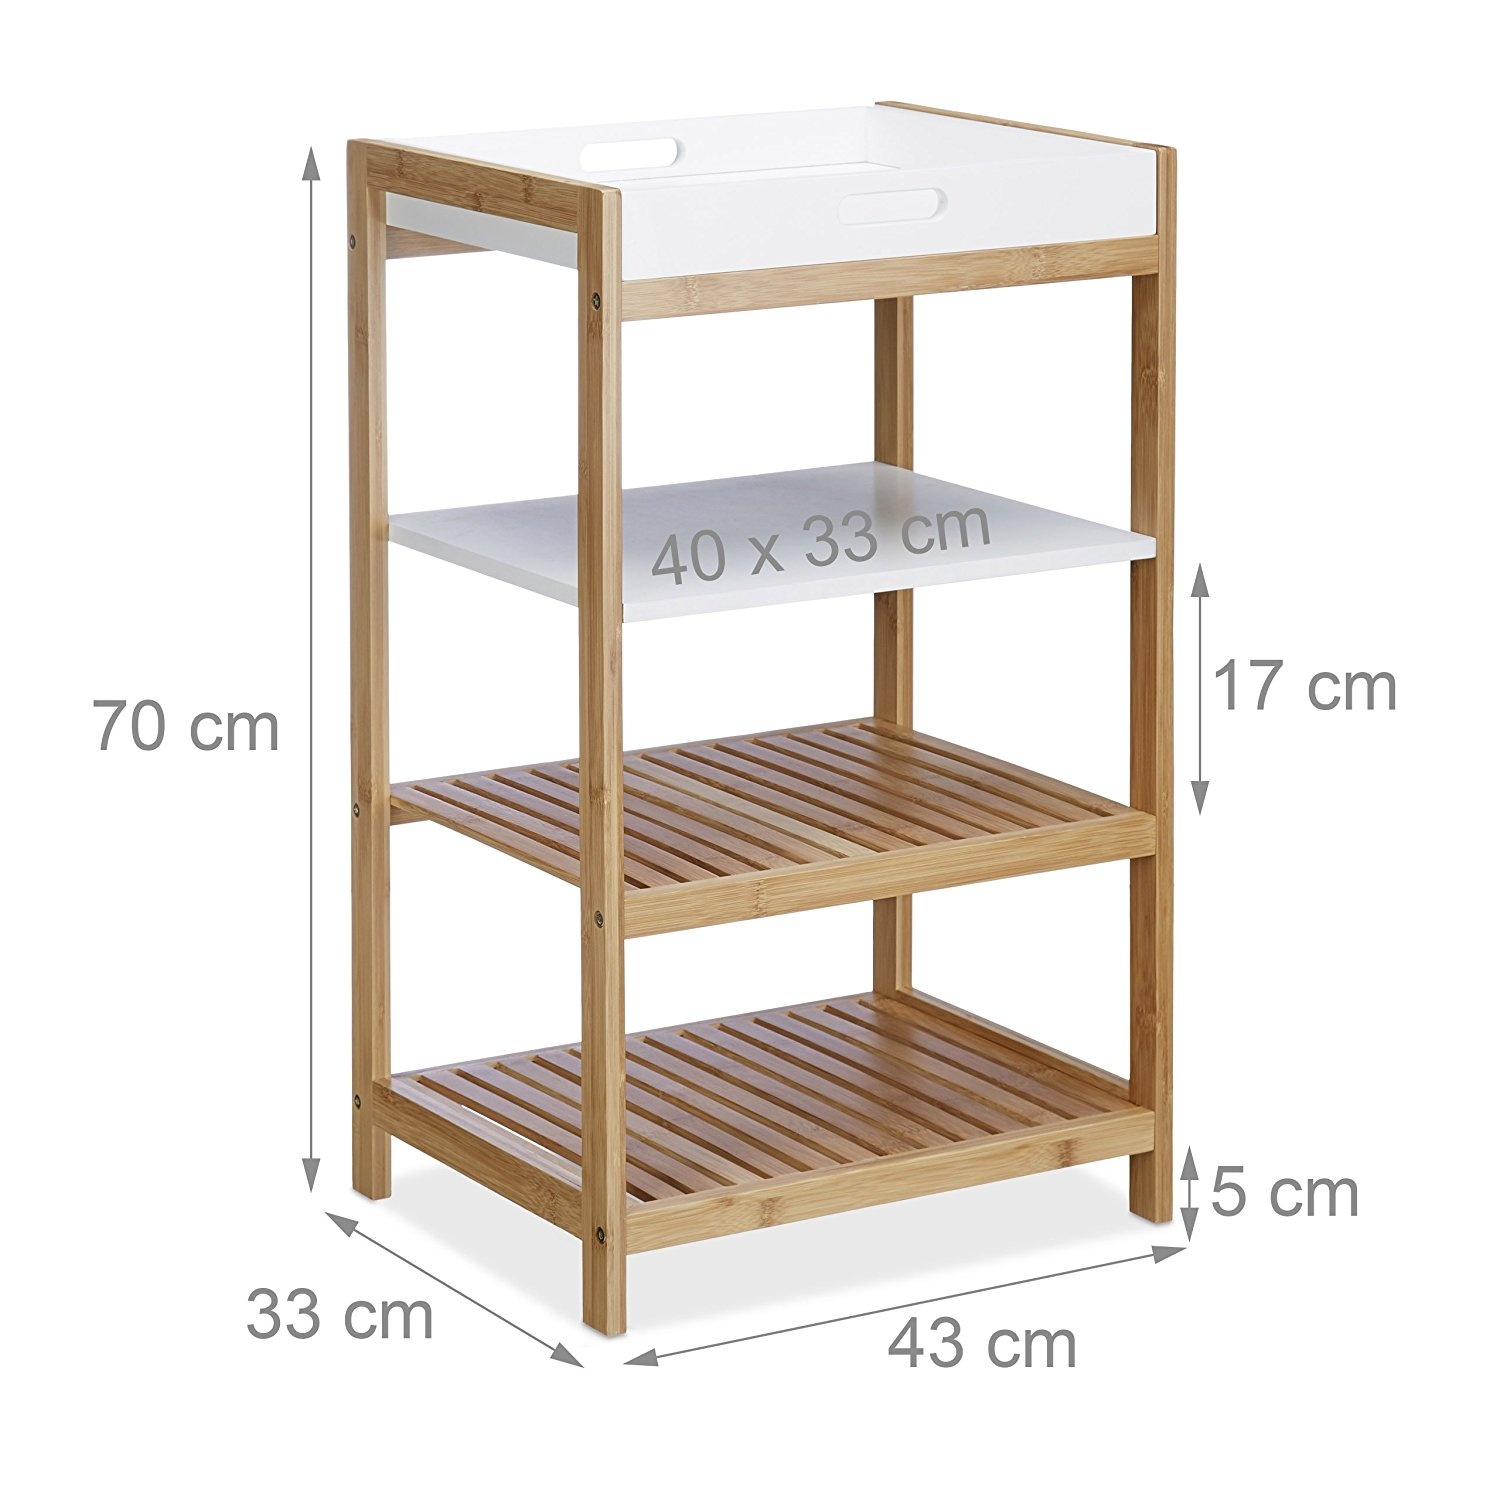 DQICE Wooden Storage Rack Solid Wood Multi-Purpose Rack Kitchen Drain Tray